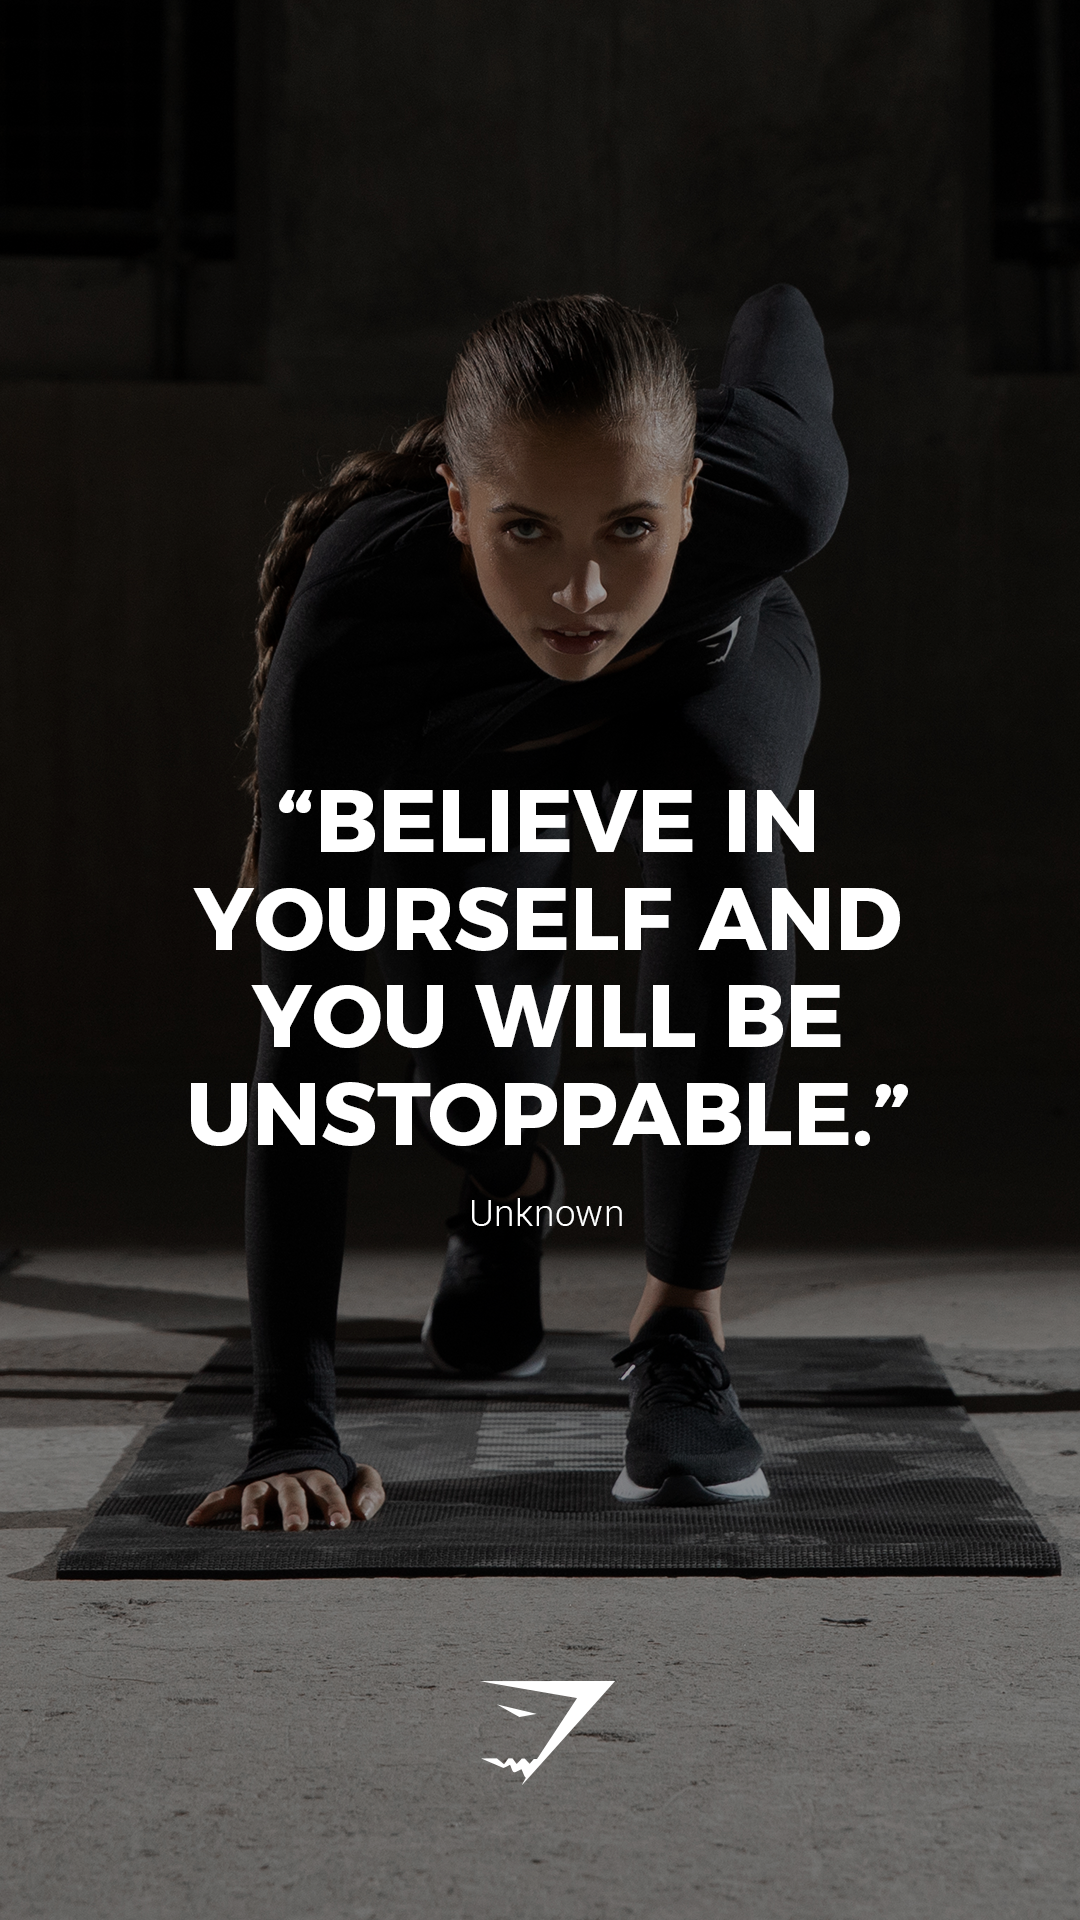 Believe In Yourself And You Will Be Unstoppable Unknown Gymshark Quotes Motivational Inspiration Motiverende Fitnesscitaten Dieetmotivatie Motivatie